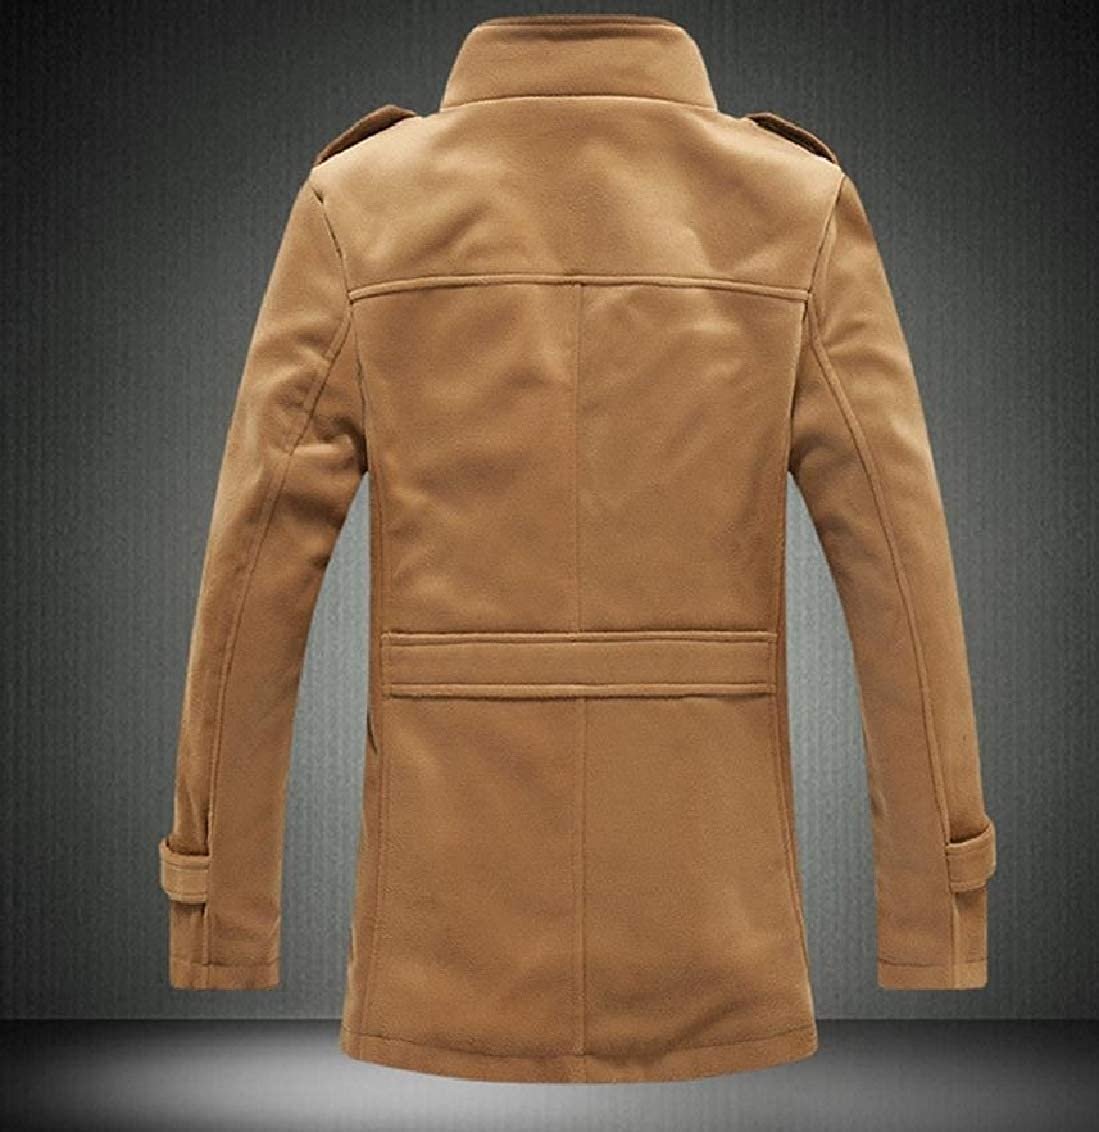 FreelyMen Solid-Colored Plus Velvet Pocket Button Up Thickening Coat Jacket